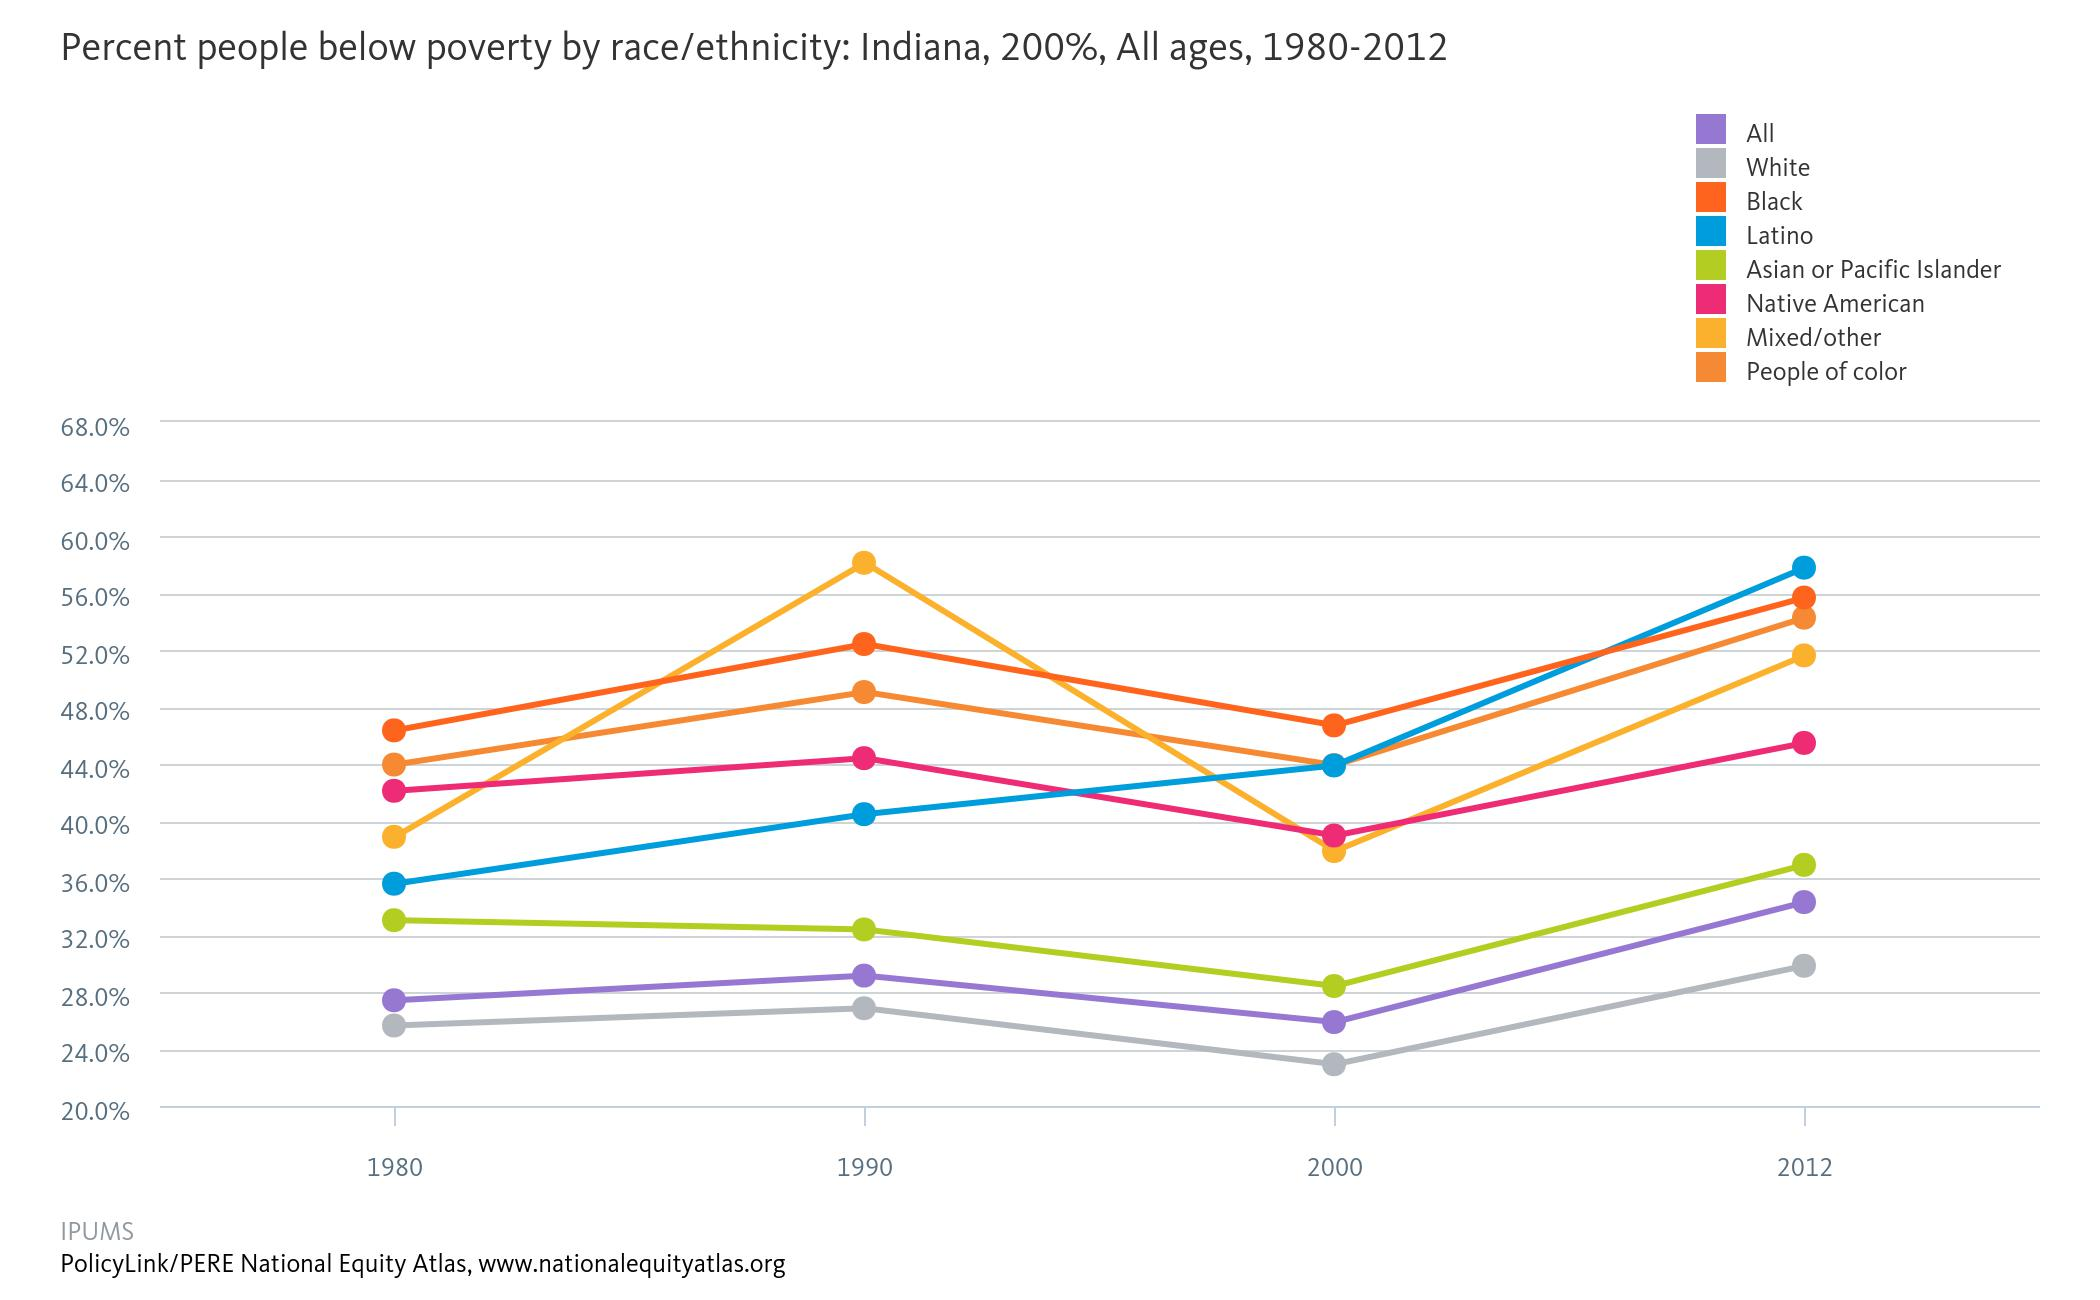 Percent_people_below_poverty_by_raceethnicity_Indiana_200_All_ages_19802012.jpeg